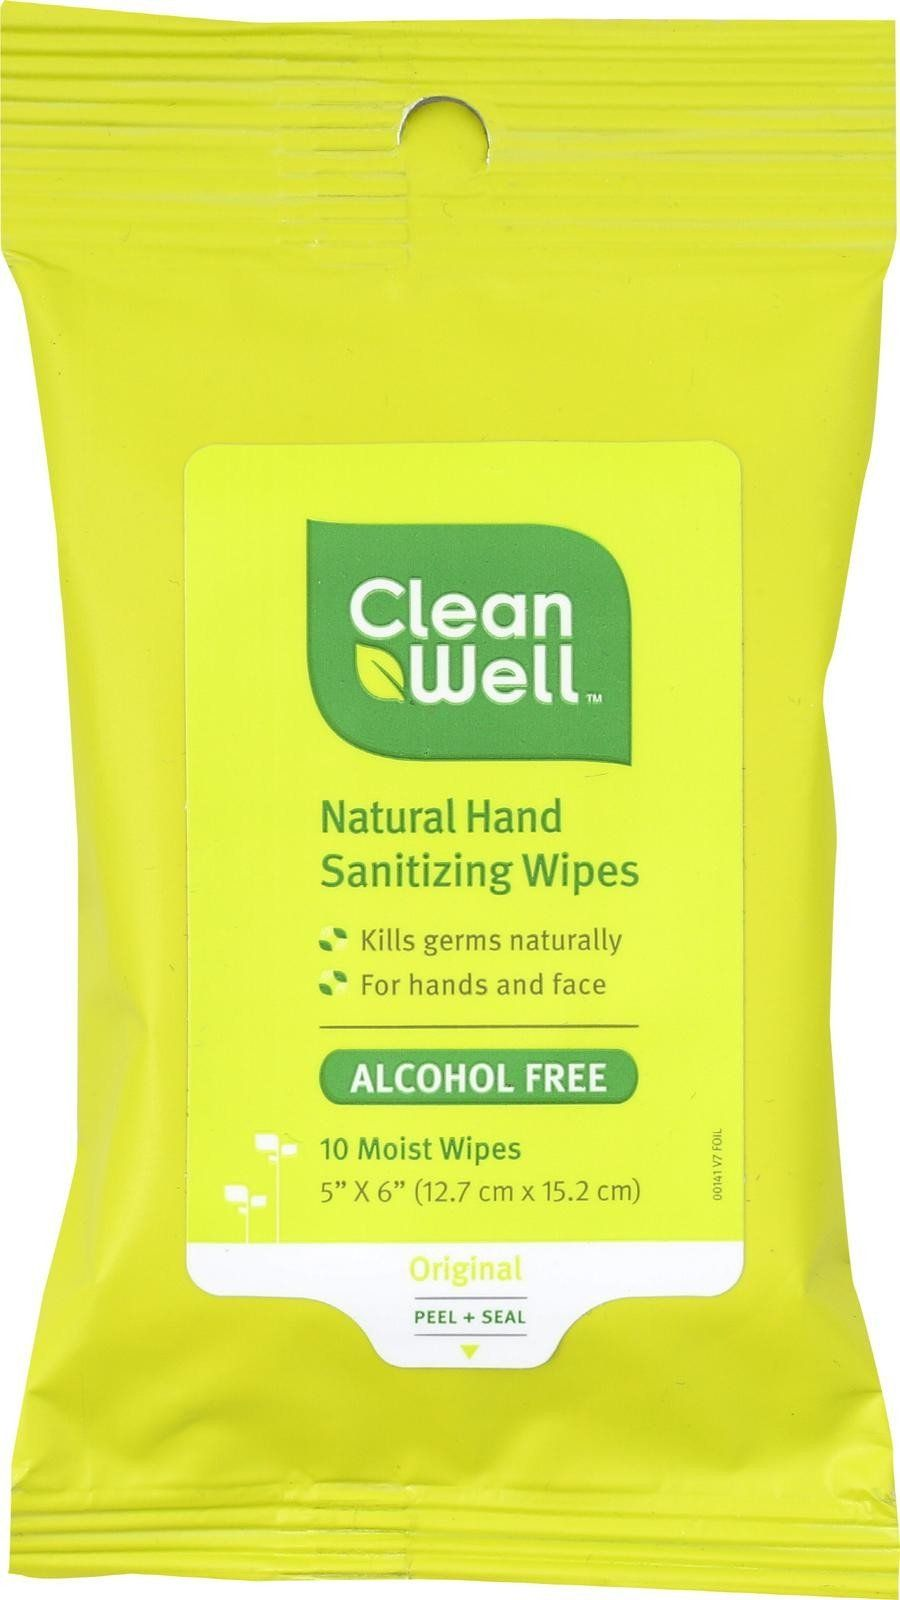 Cleanwell Hand Sanitizing Wipes Are Great For Face And Hands Use